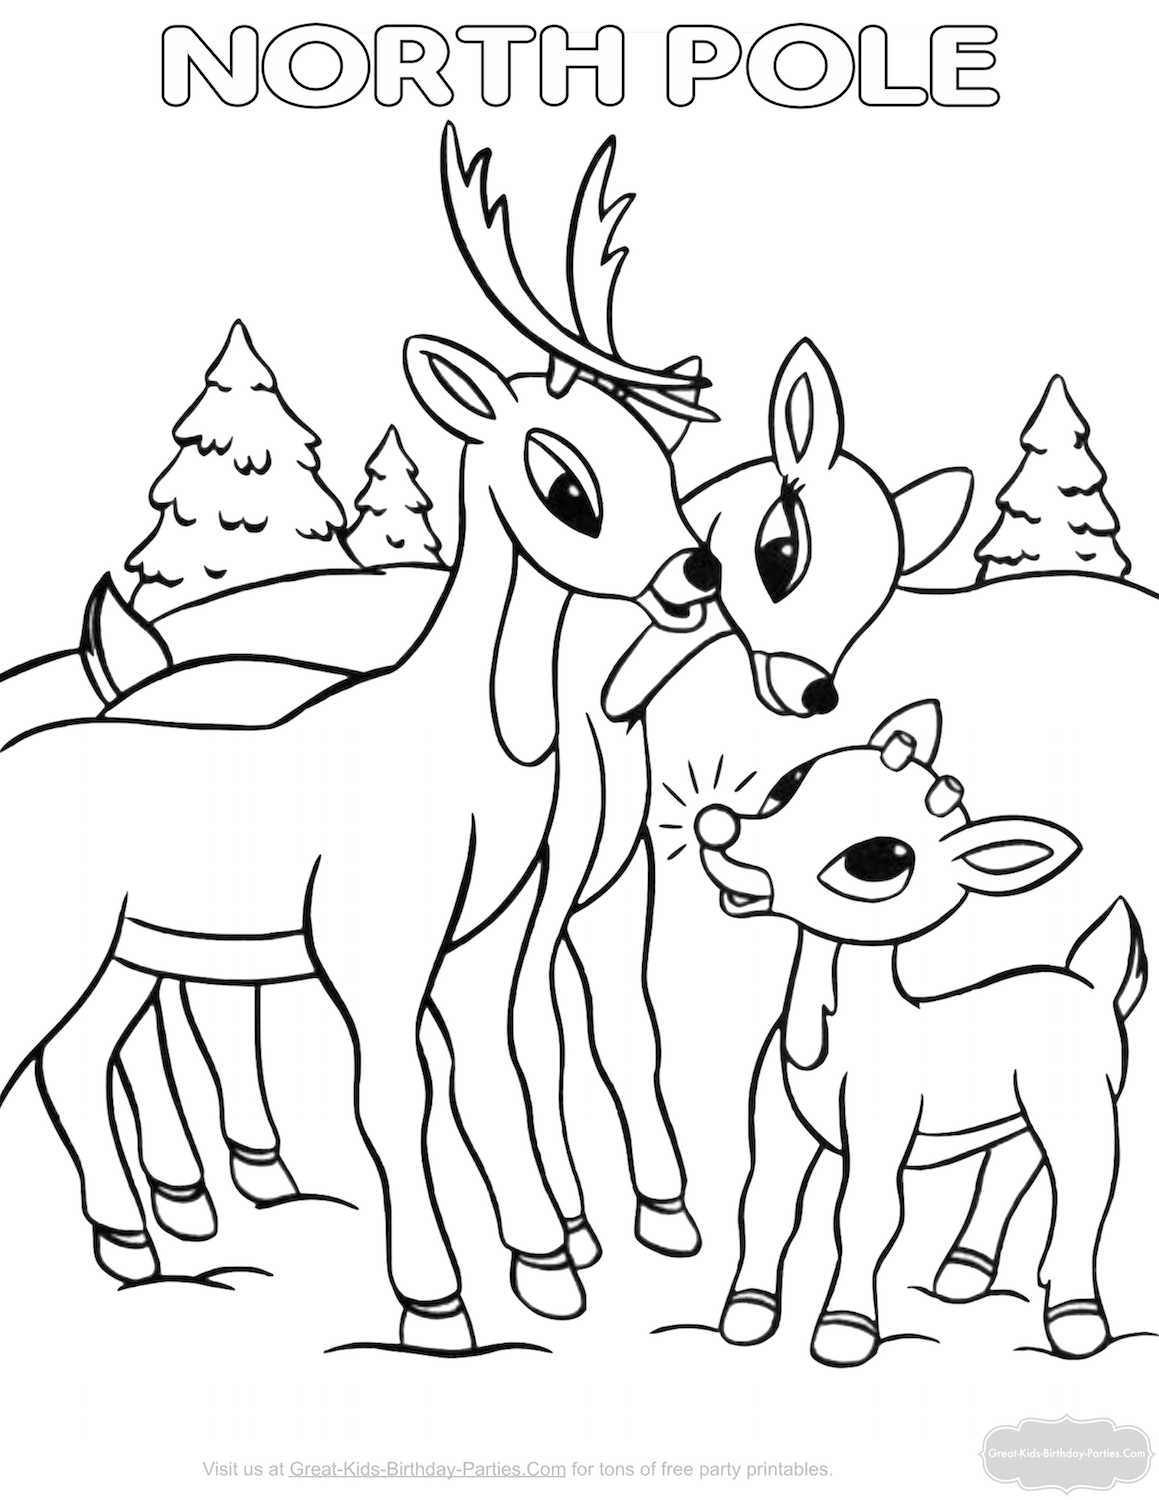 Children Are Filled With Excitement And Looking Forward To The Big Day Keep Them Entertained Fun Christmas Coloring Pages